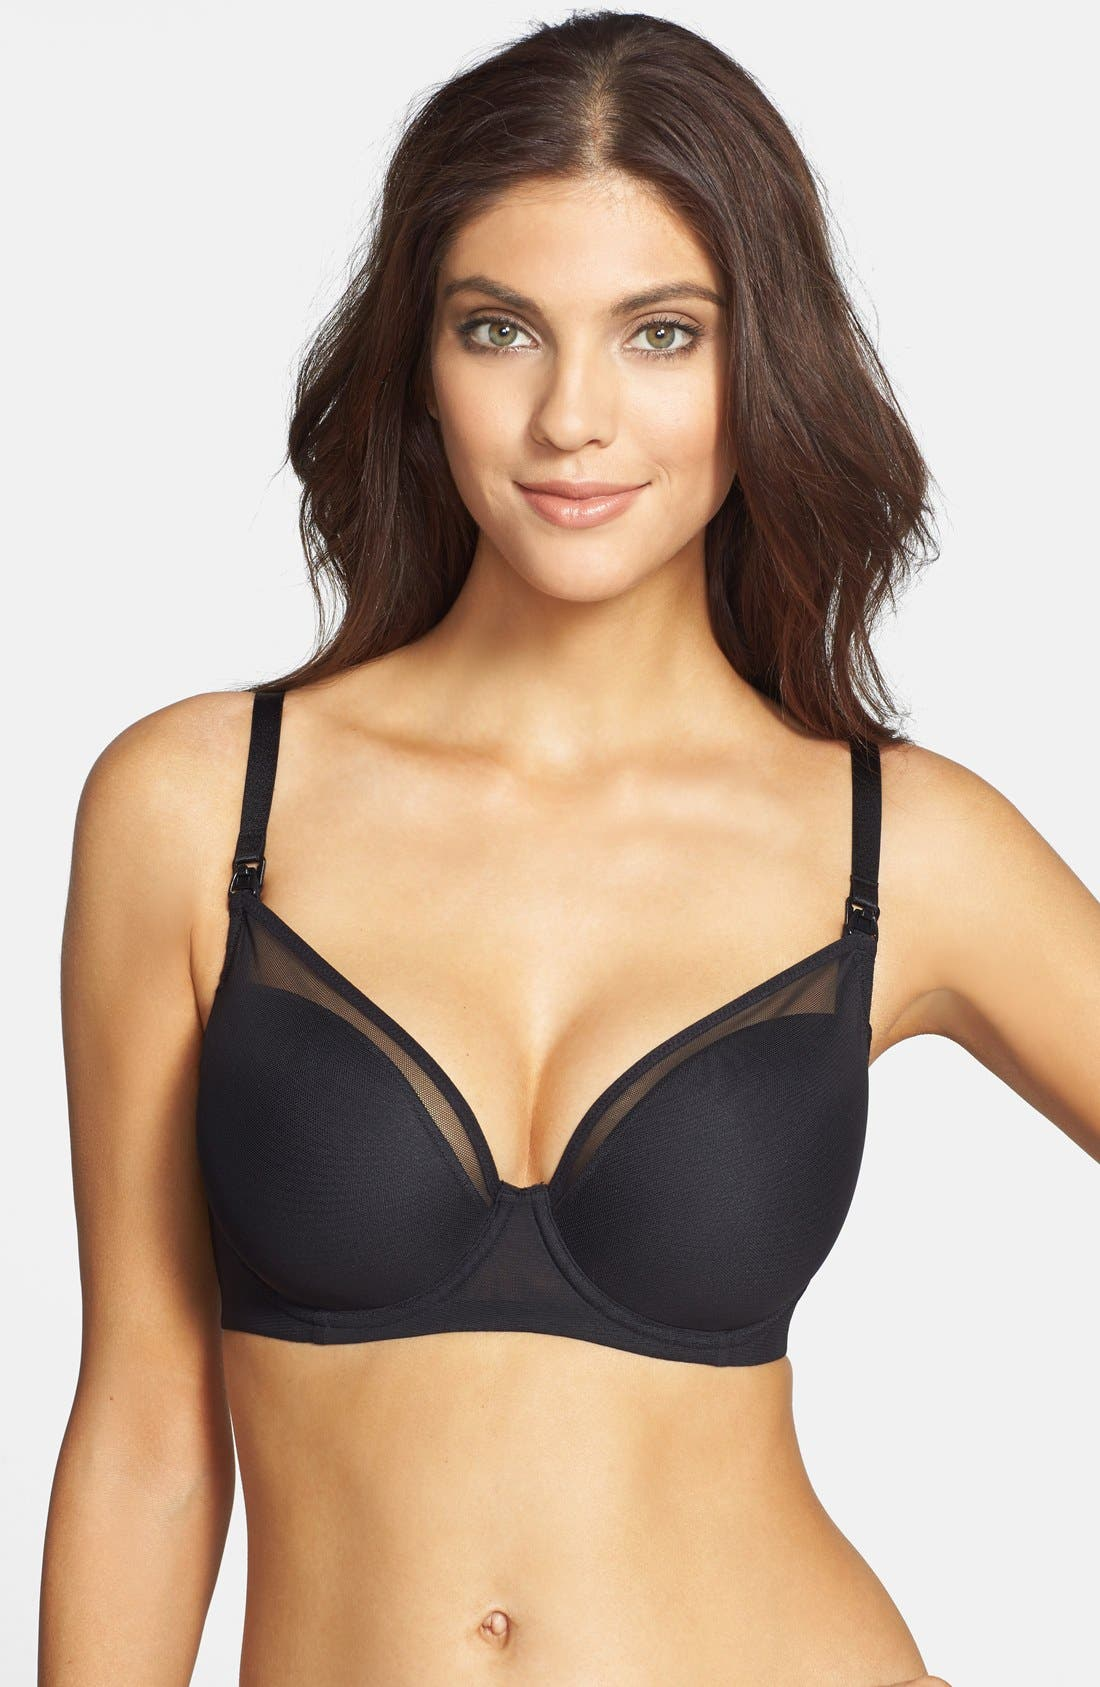 Le Mystére 'Mama Mia' Underwire Nursing Bra,                             Alternate thumbnail 9, color,                             BLACK